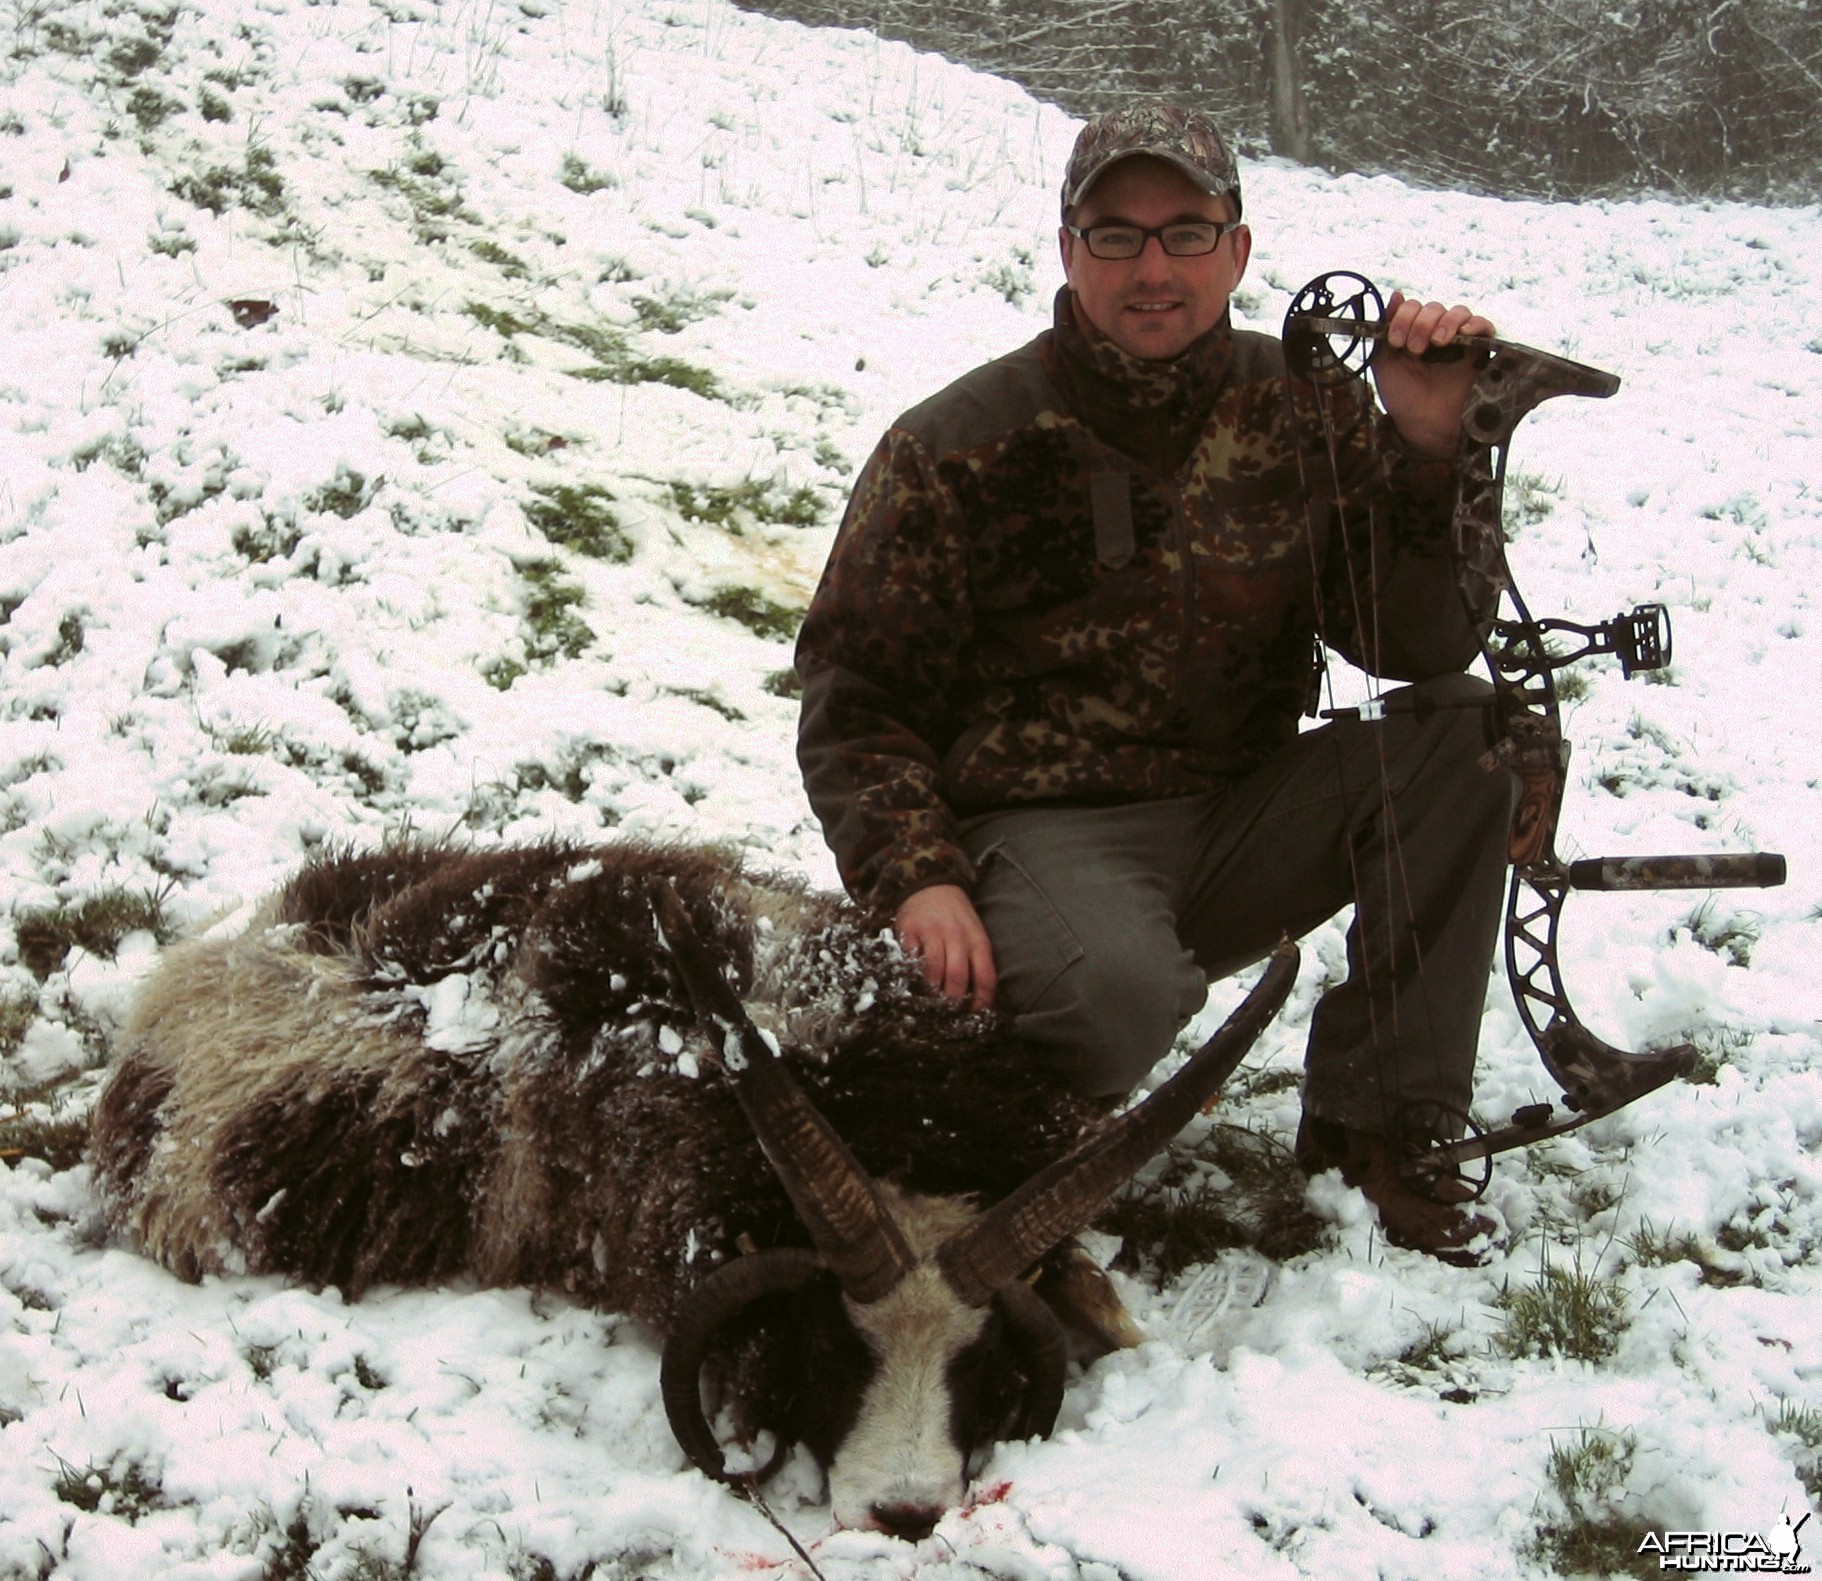 Bowhunting Four-horned sheep, 2010